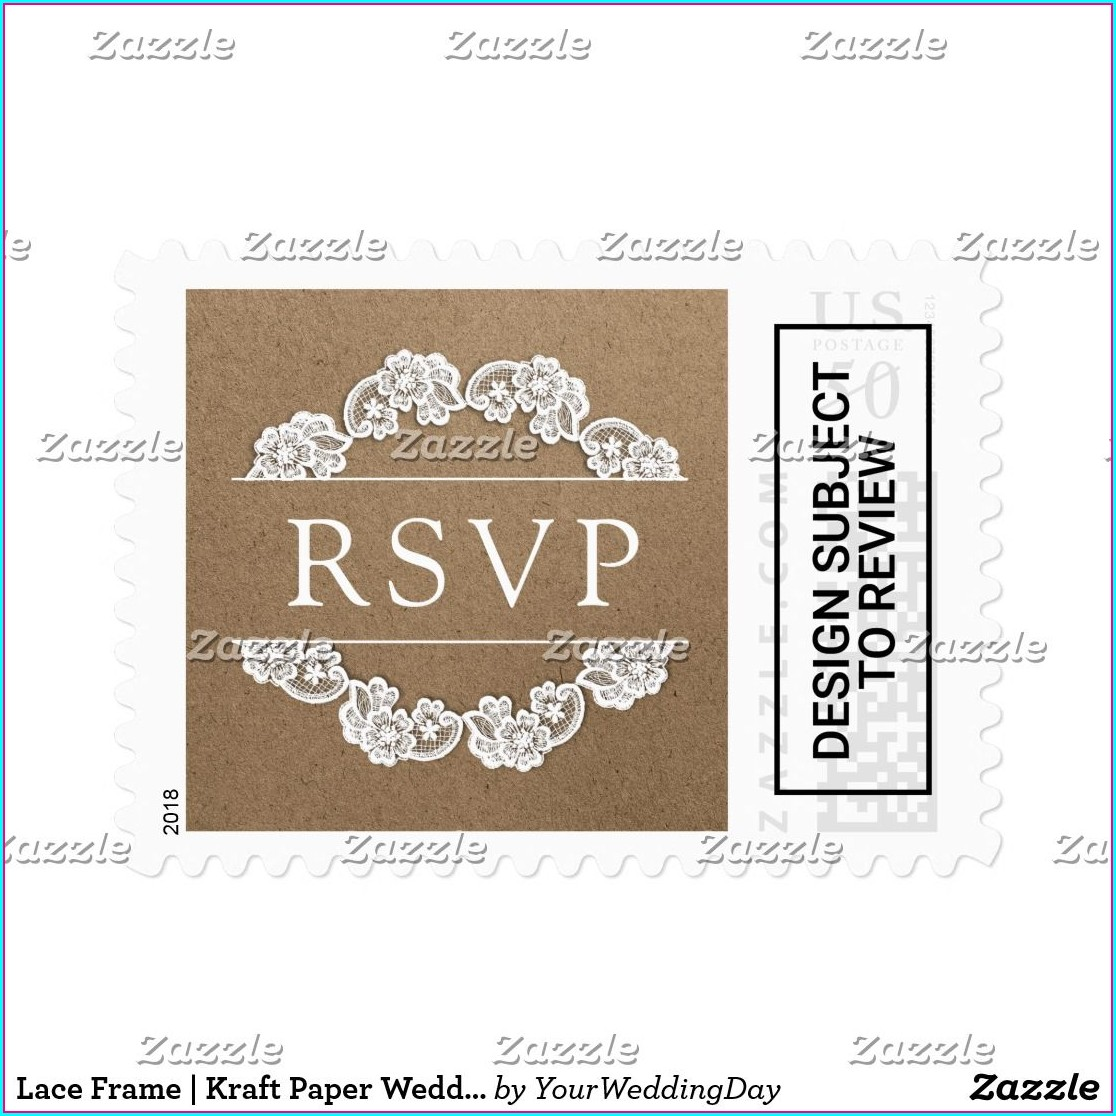 Zazzle Wedding Invitations Reviews